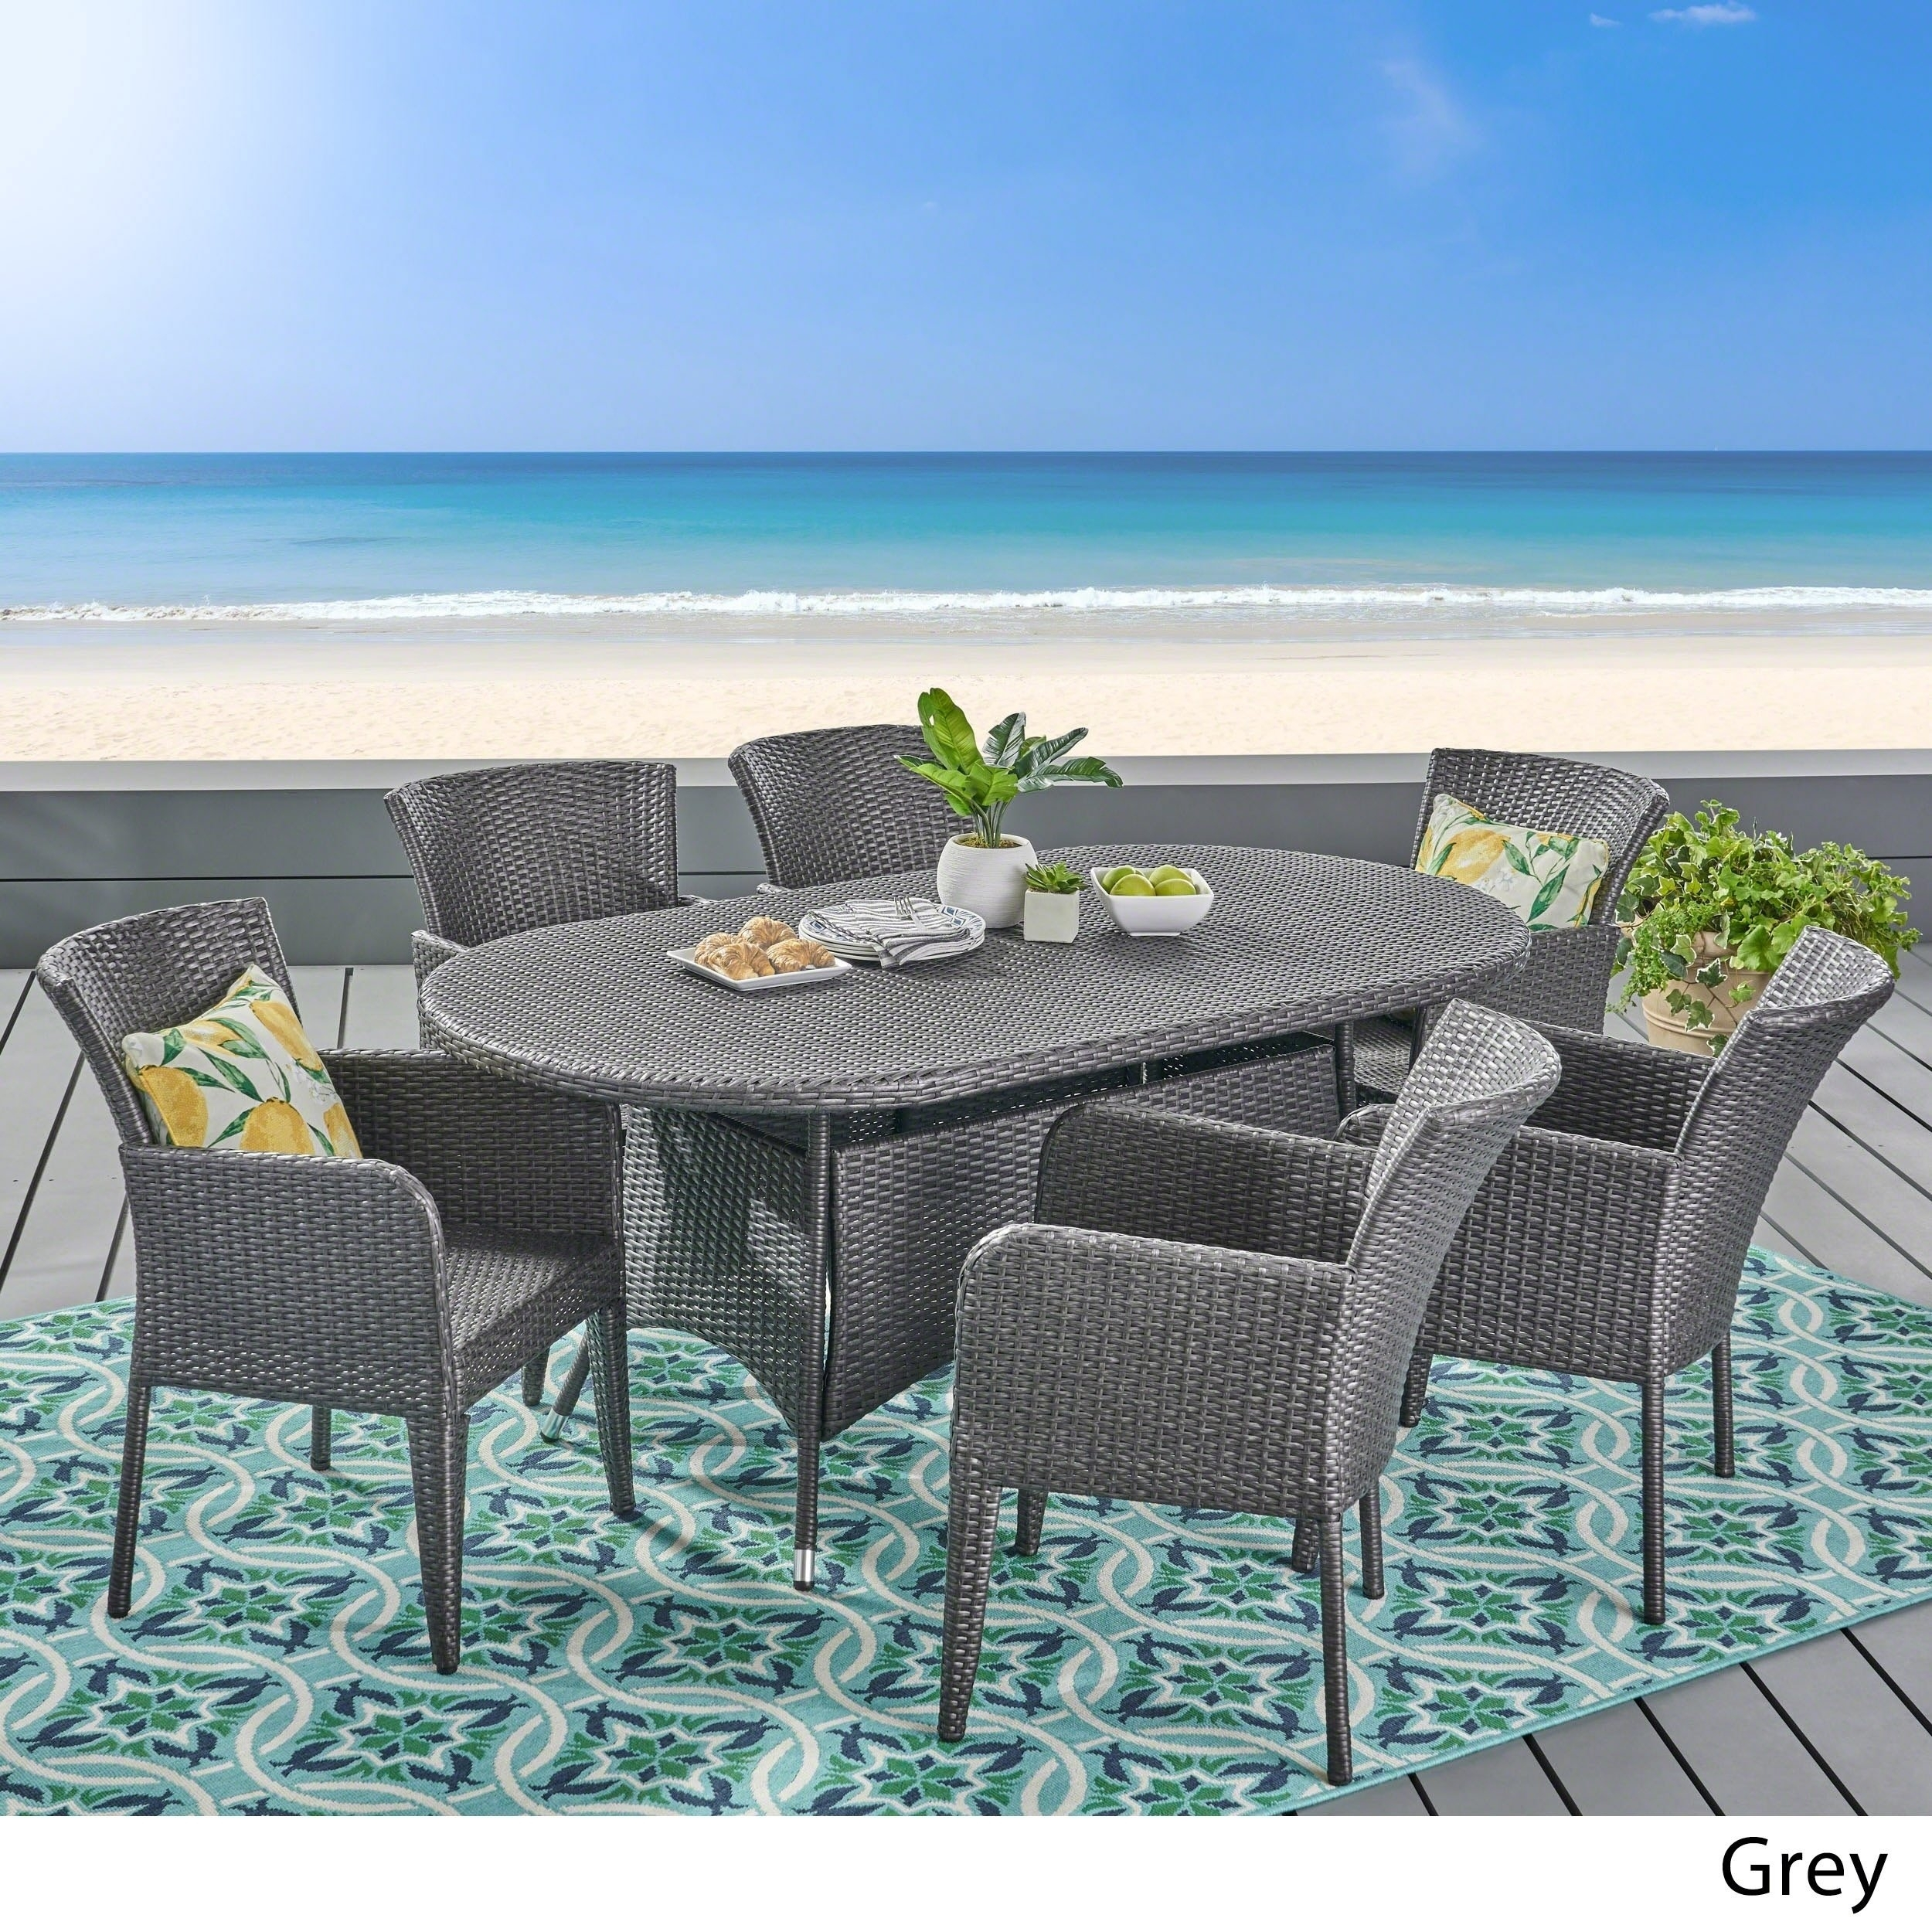 Shop Corsica Outdoor 7 Piece Wicker Dining Setchristopher Knight In 2018 Delfina 7 Piece Dining Sets (Image 17 of 20)